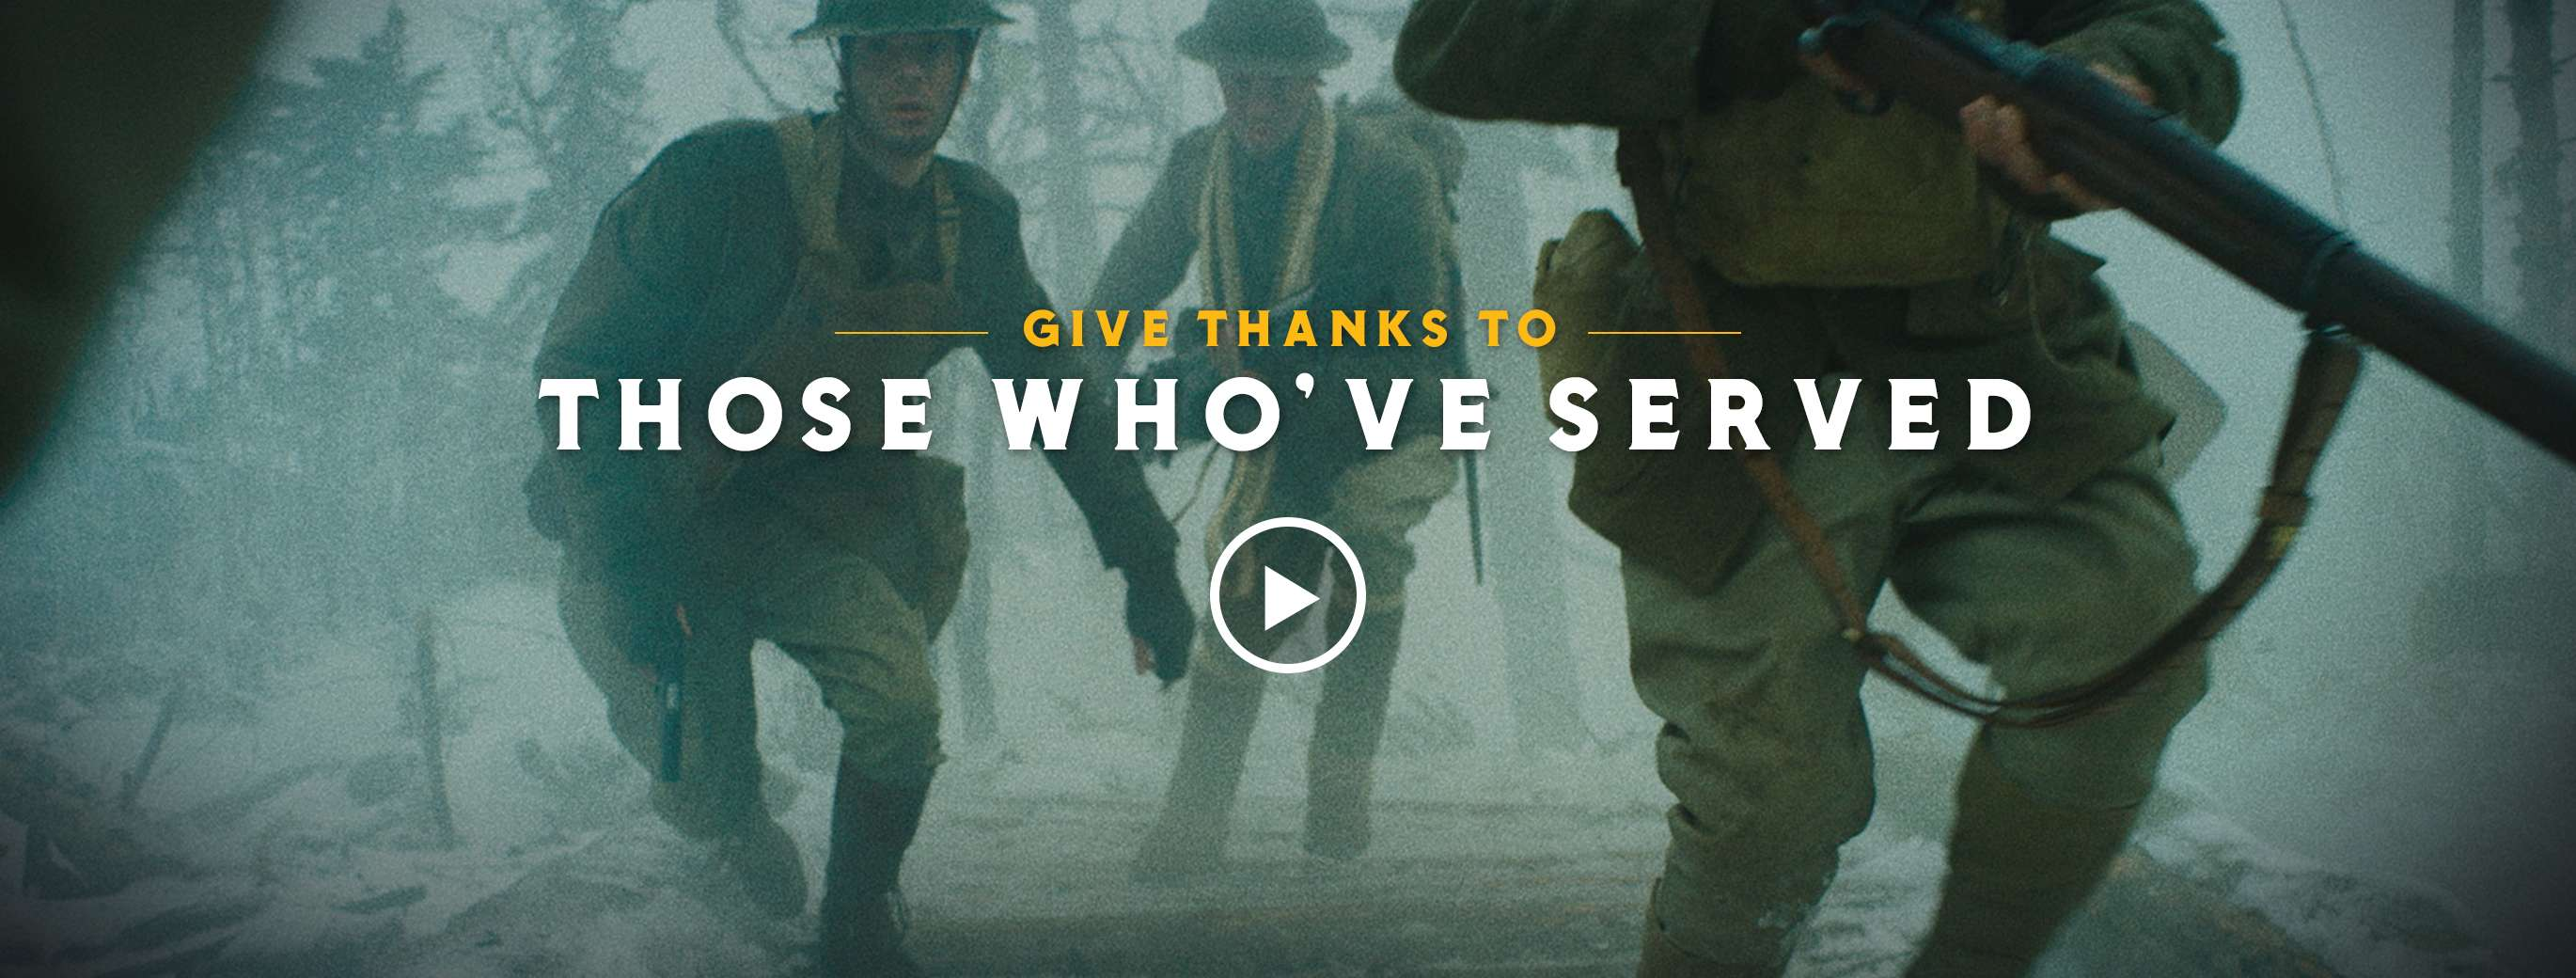 Give Thanks To Those Who Have Served